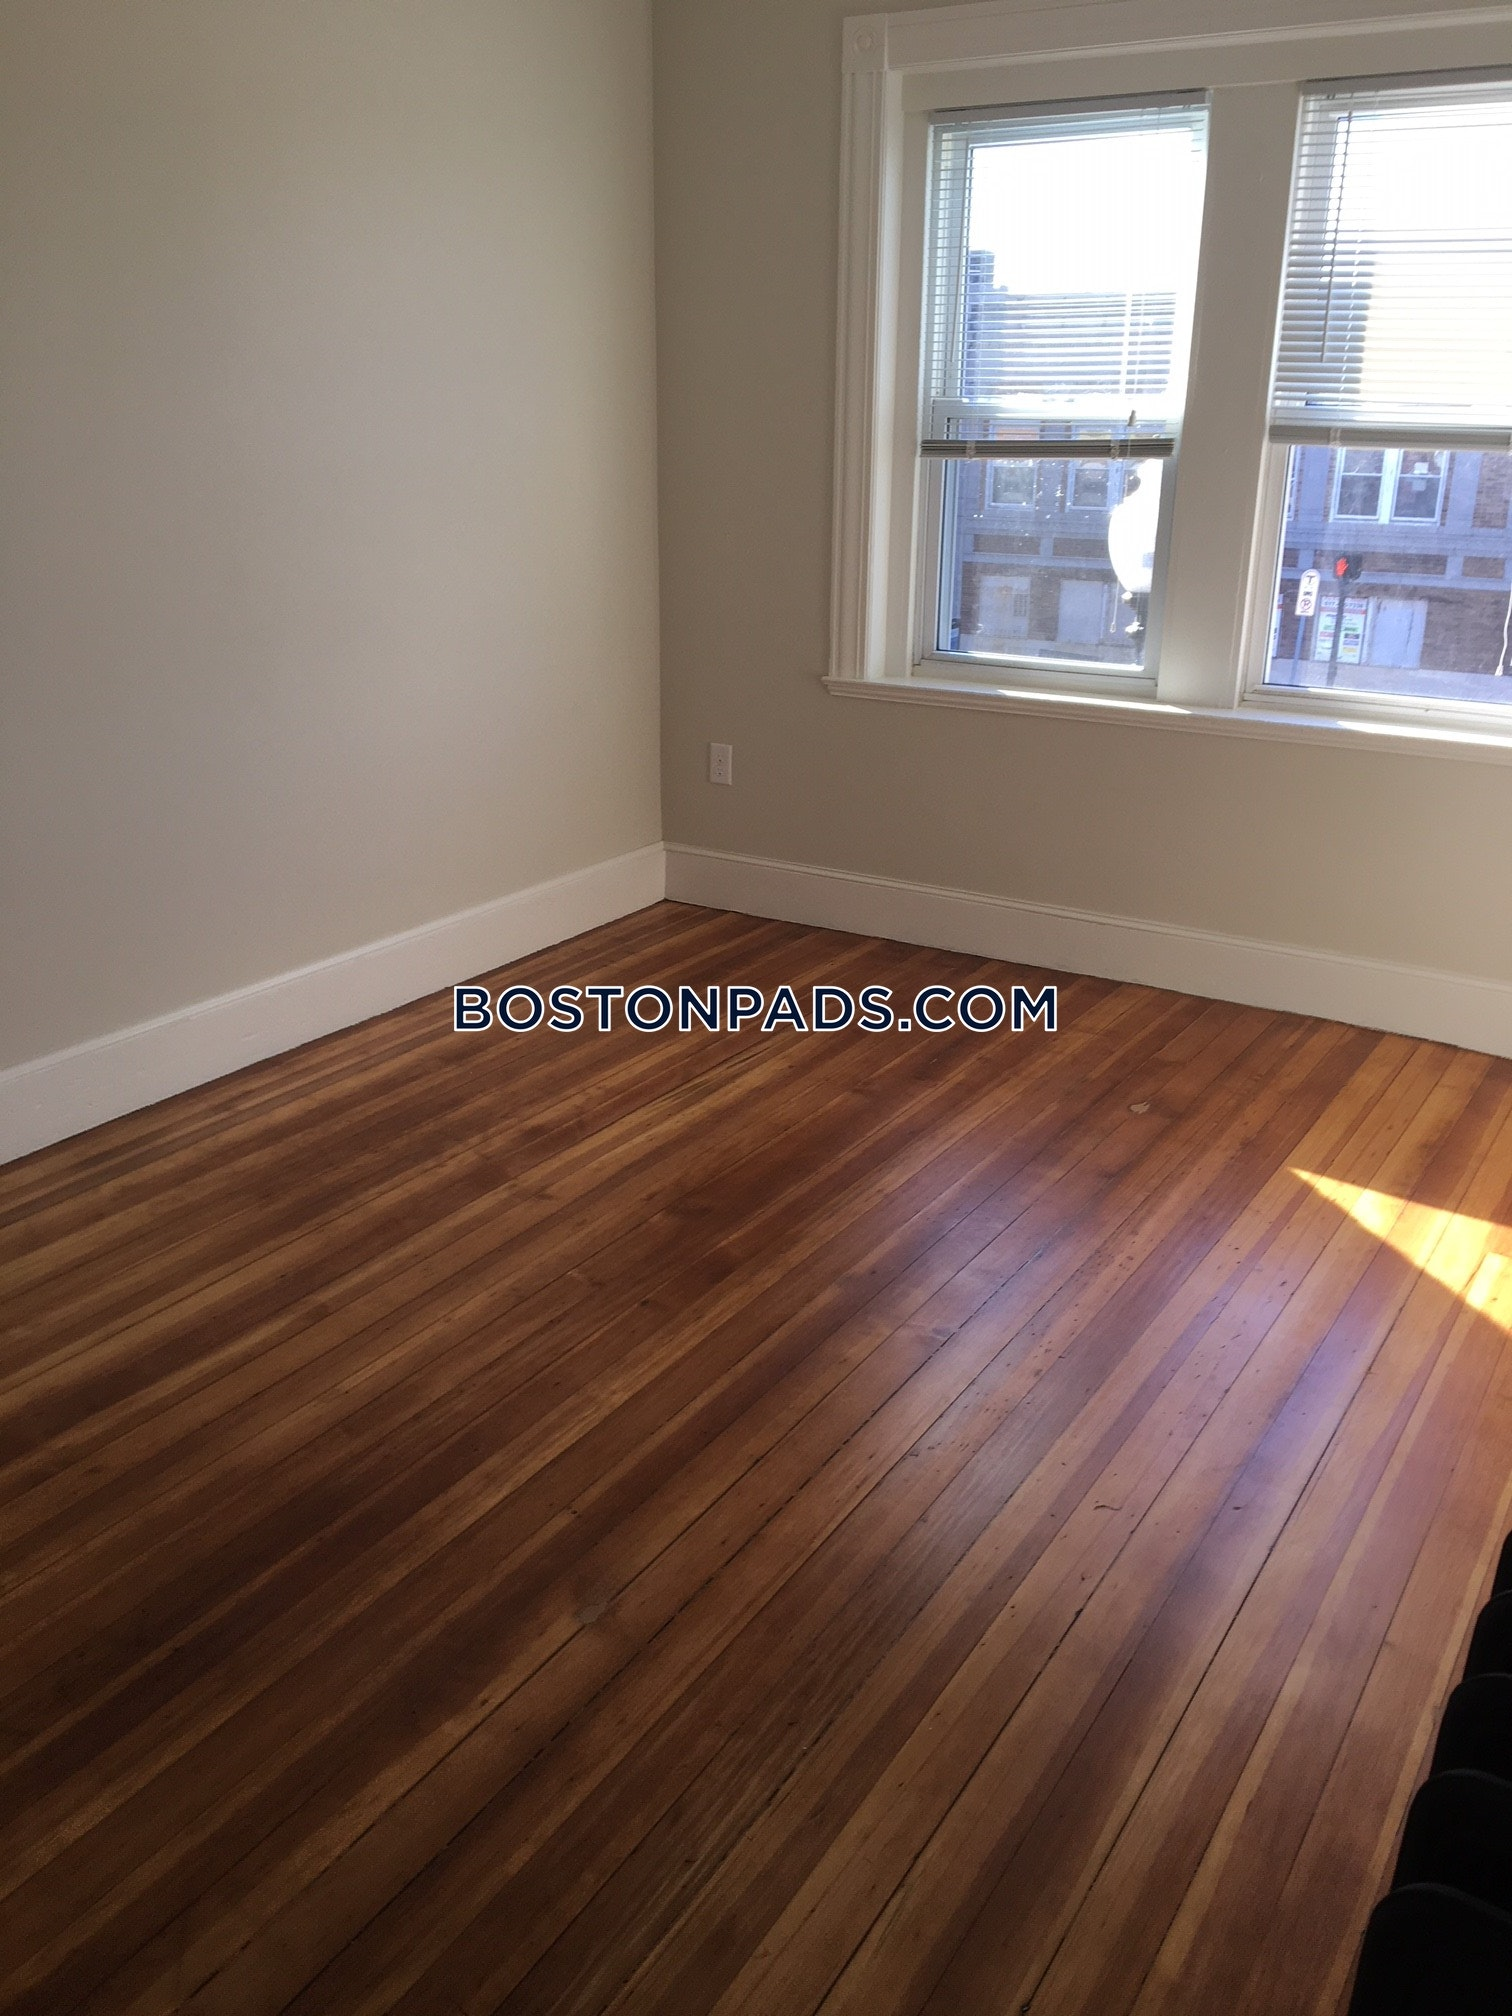 4-beds-1-bath-somerville-magounball-square-3200-451626